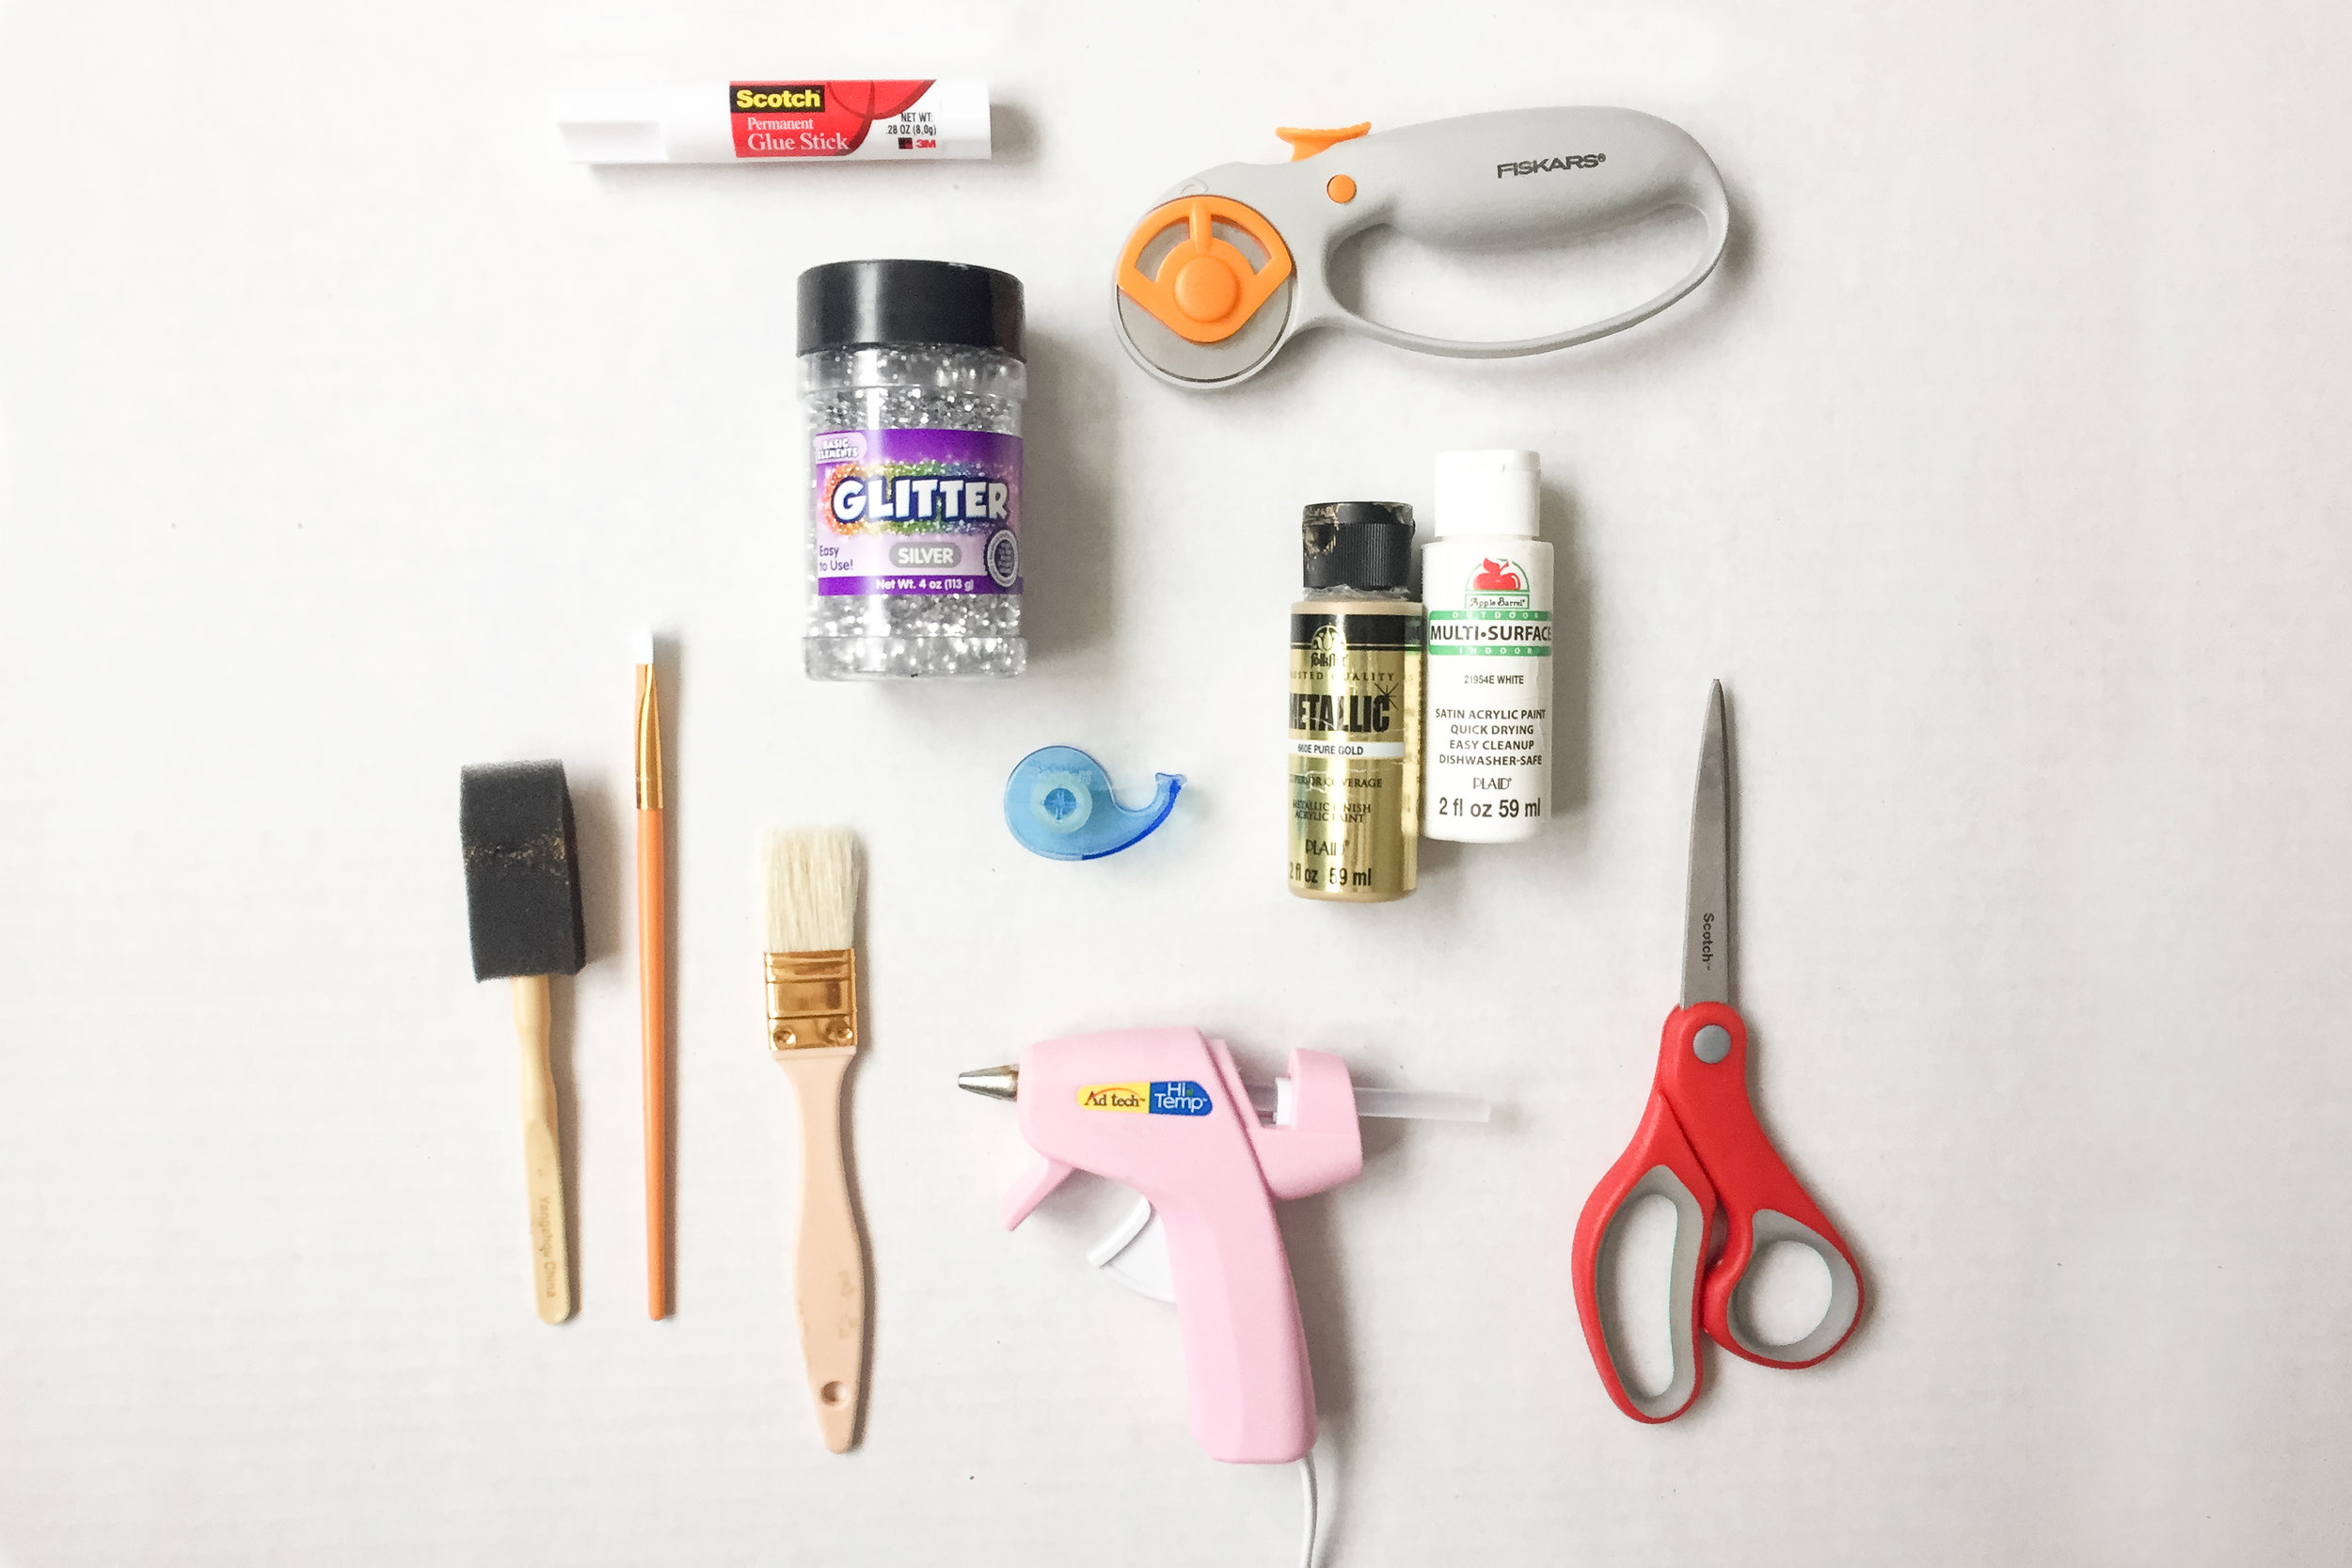 Crafts - All things crafty and creative are my jam! (Although I'm not particularly good at any of them). I love spending a lazy day curled up with a blanket, working on decor for my home, sewing or planning my next themed party!